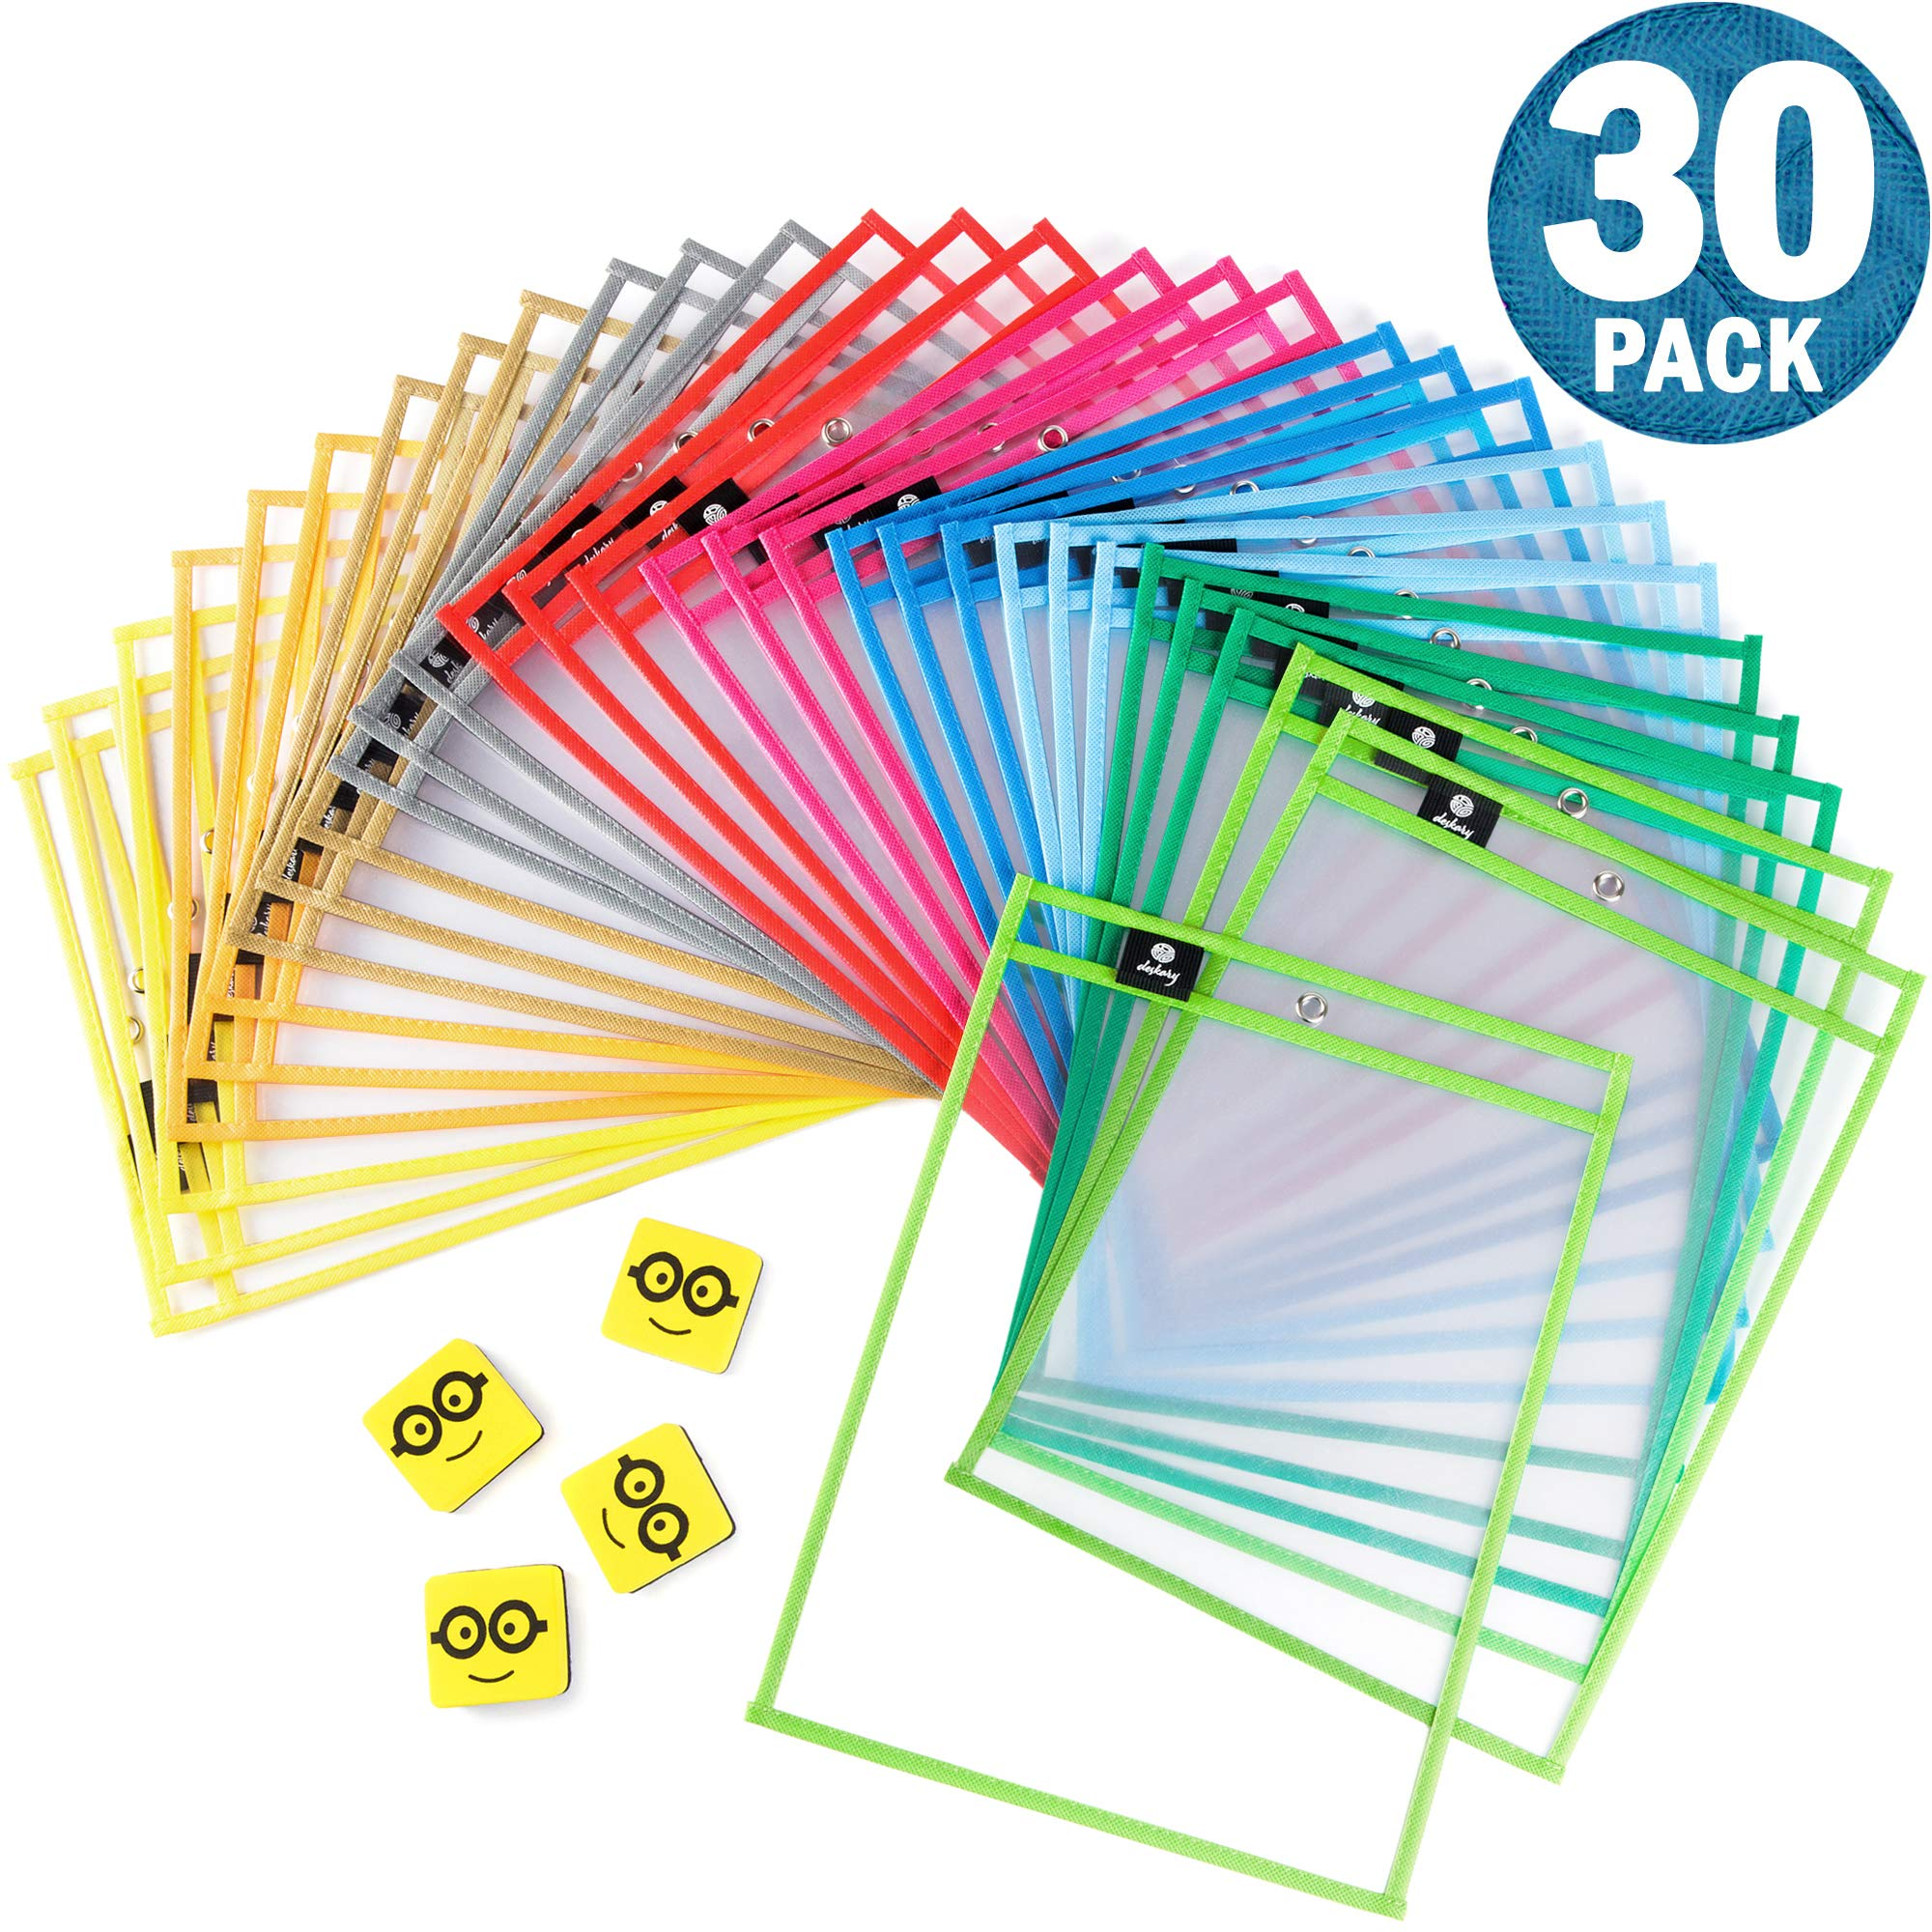 Dry Erase Pockets Reusable Sleeves - 30 Pack, Heavy Duty Oversized 10x14'' Clear Plastic Sheet Paper Protectors, 10 Assorted Colors, Teacher Supplies for Classroom, School & Homeschool Organization by Deskary